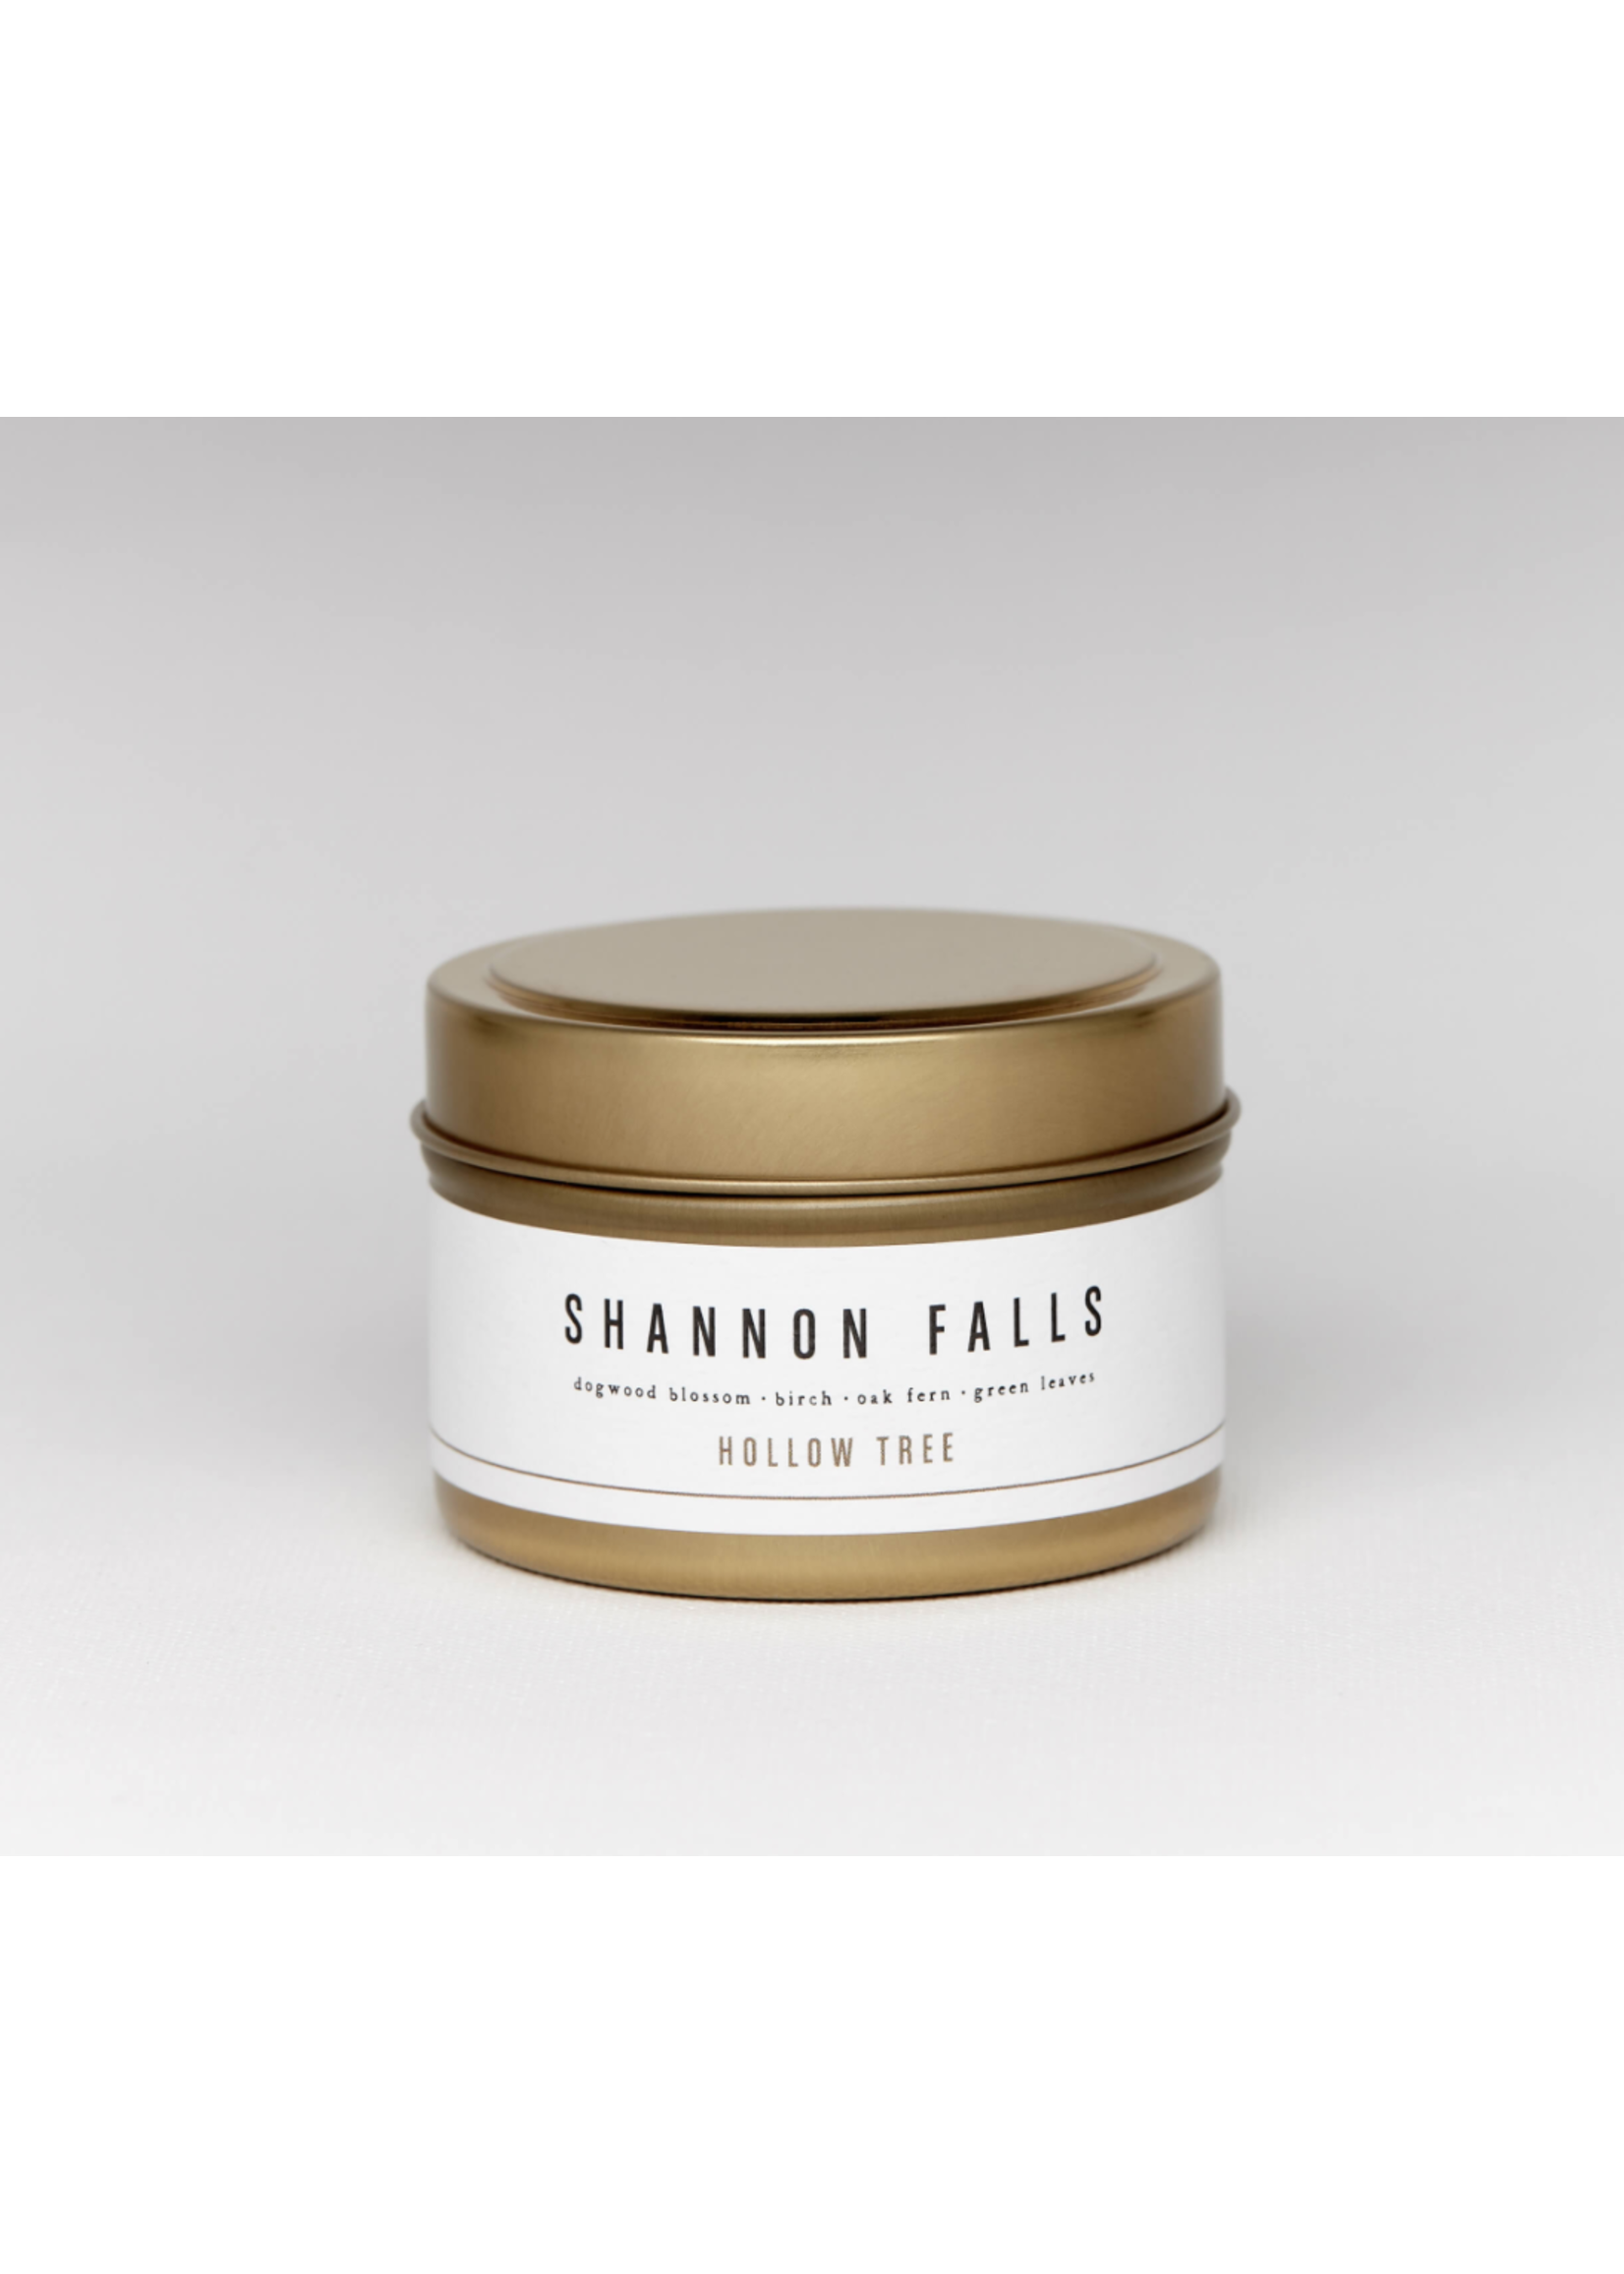 Shannon Falls Travel Candle